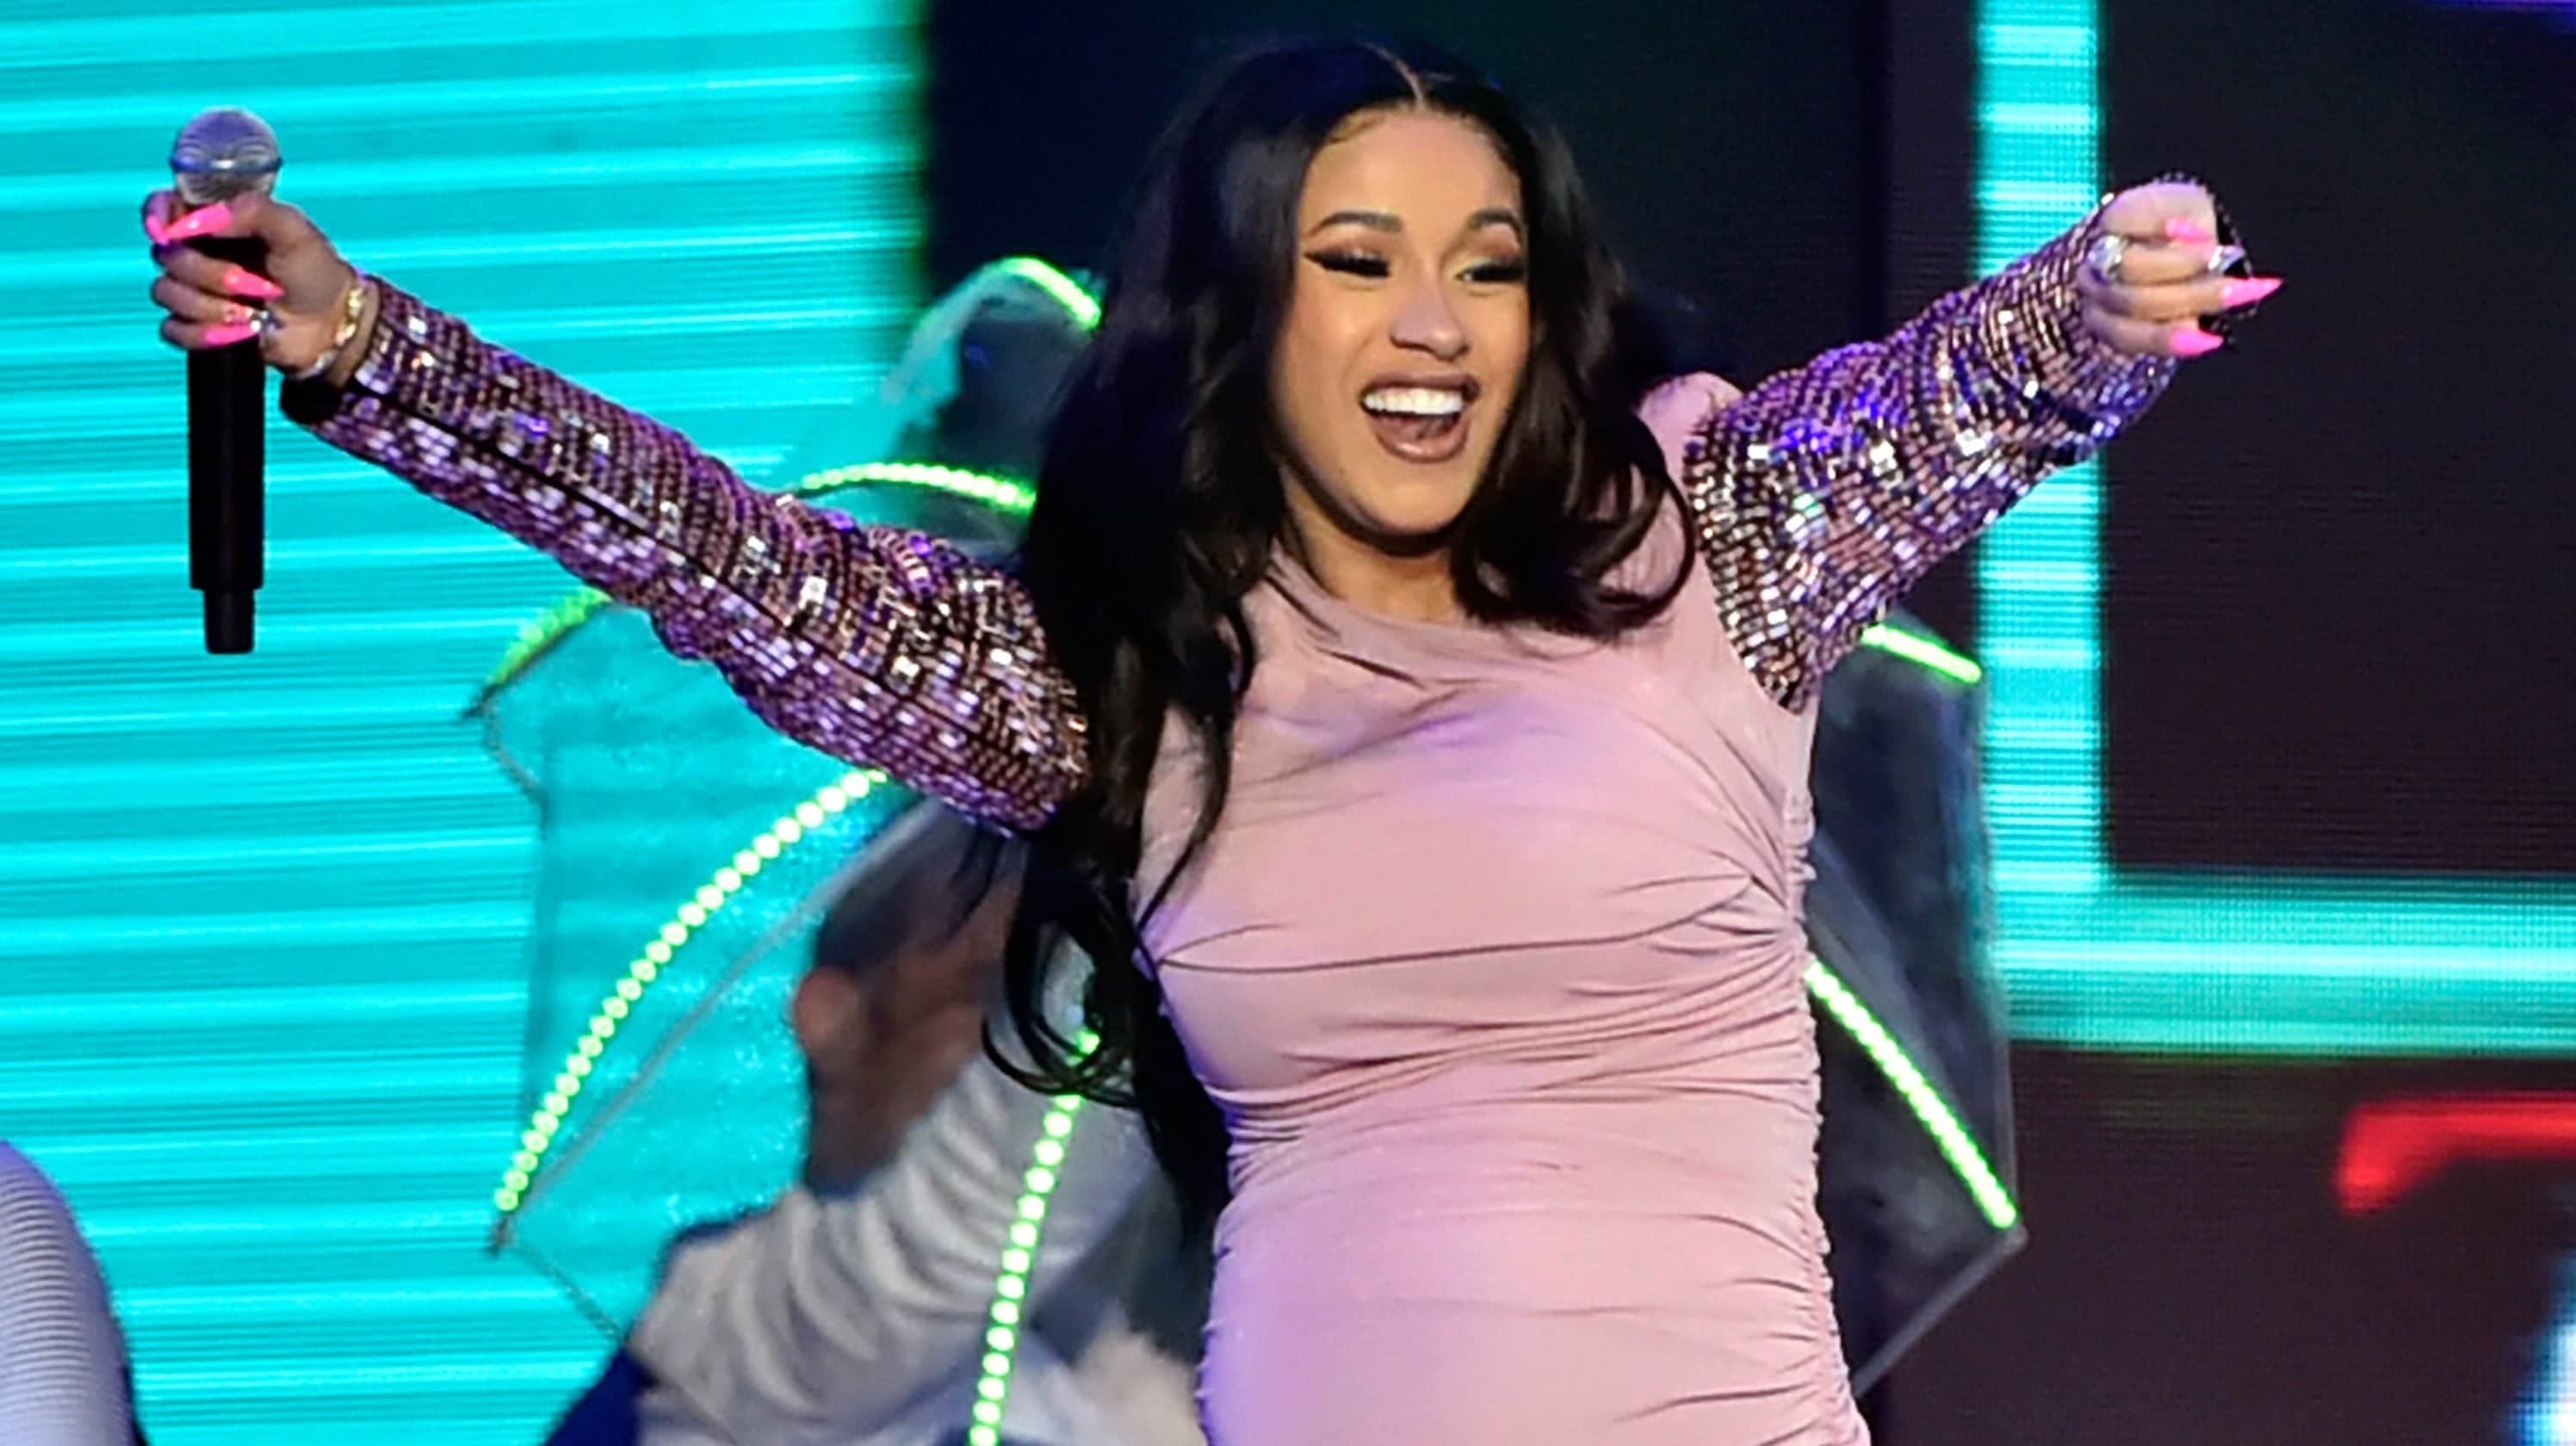 Uh Oh - Cardi B Sued By Former Manager For $10 Million!